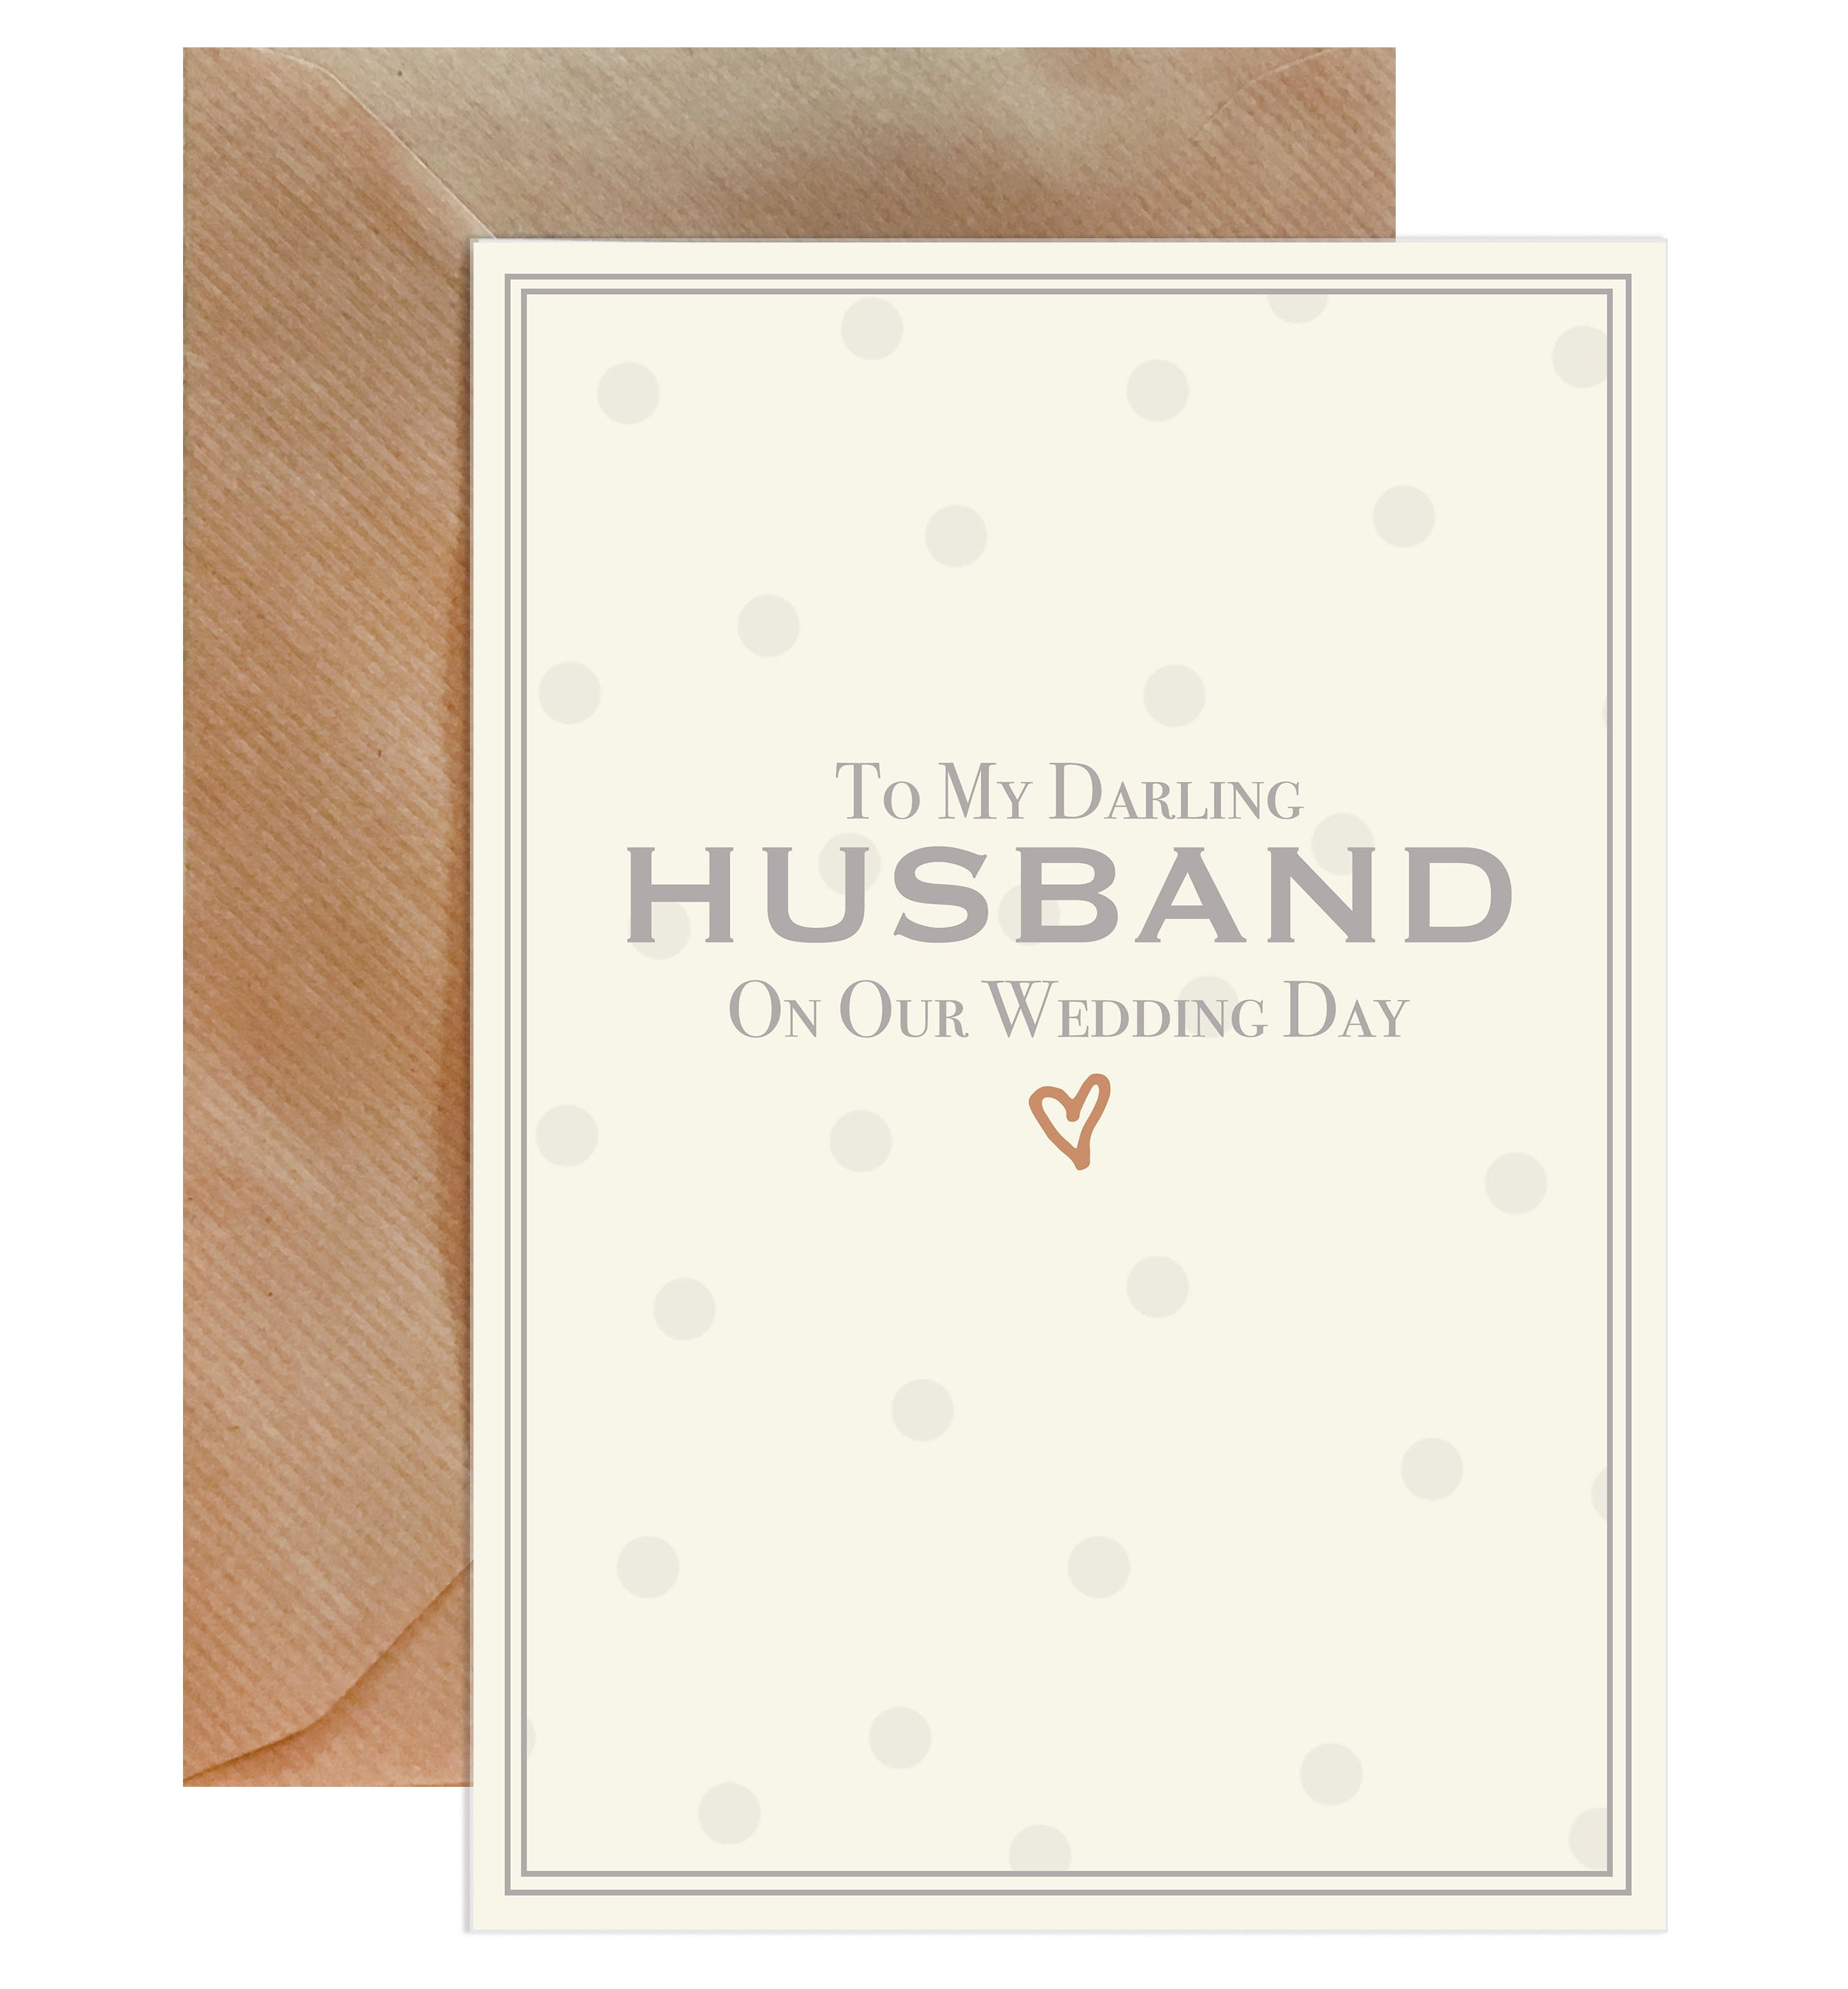 To My Darling Husband On Our Wedding Day Greeting Card-Greeting Cards-Mode Prints